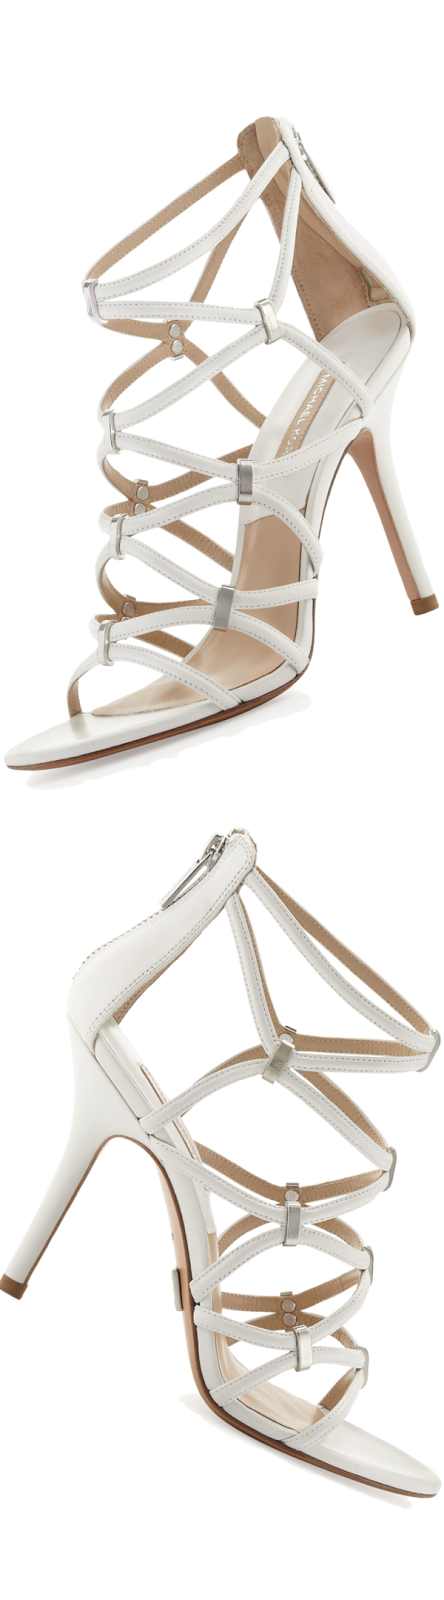 http://go.redirectingat.com?id=60170X1382542&xs=1&url=http%3A%2F%2Fwww.neimanmarcus.com%2Fmichael-kors-strappy-sandal-th.html